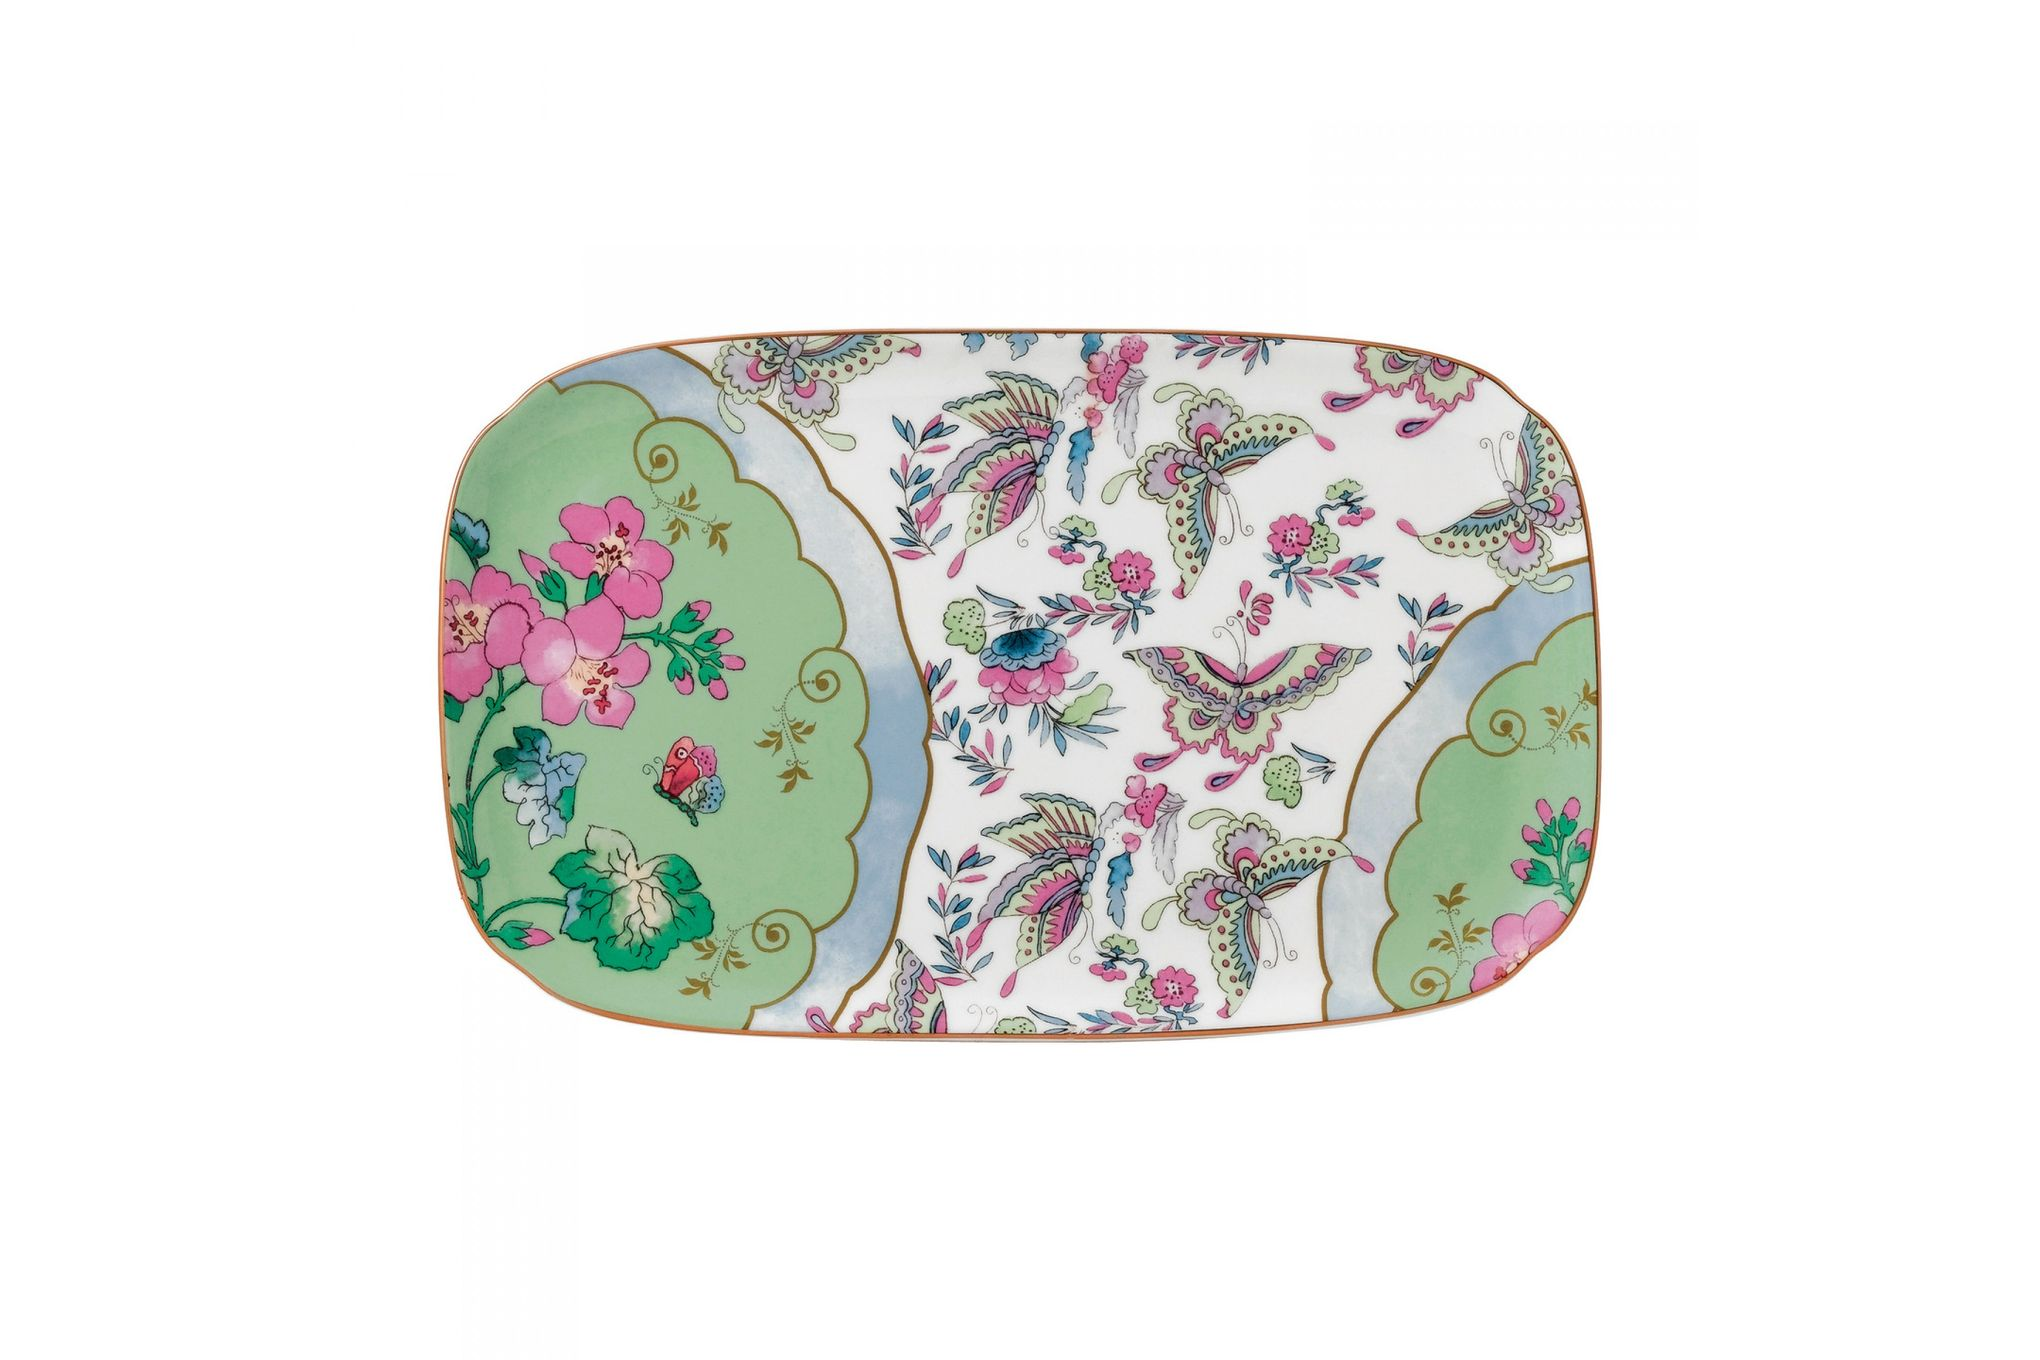 Wedgwood Butterfly Bloom Sandwich Tray Blue Peony thumb 1